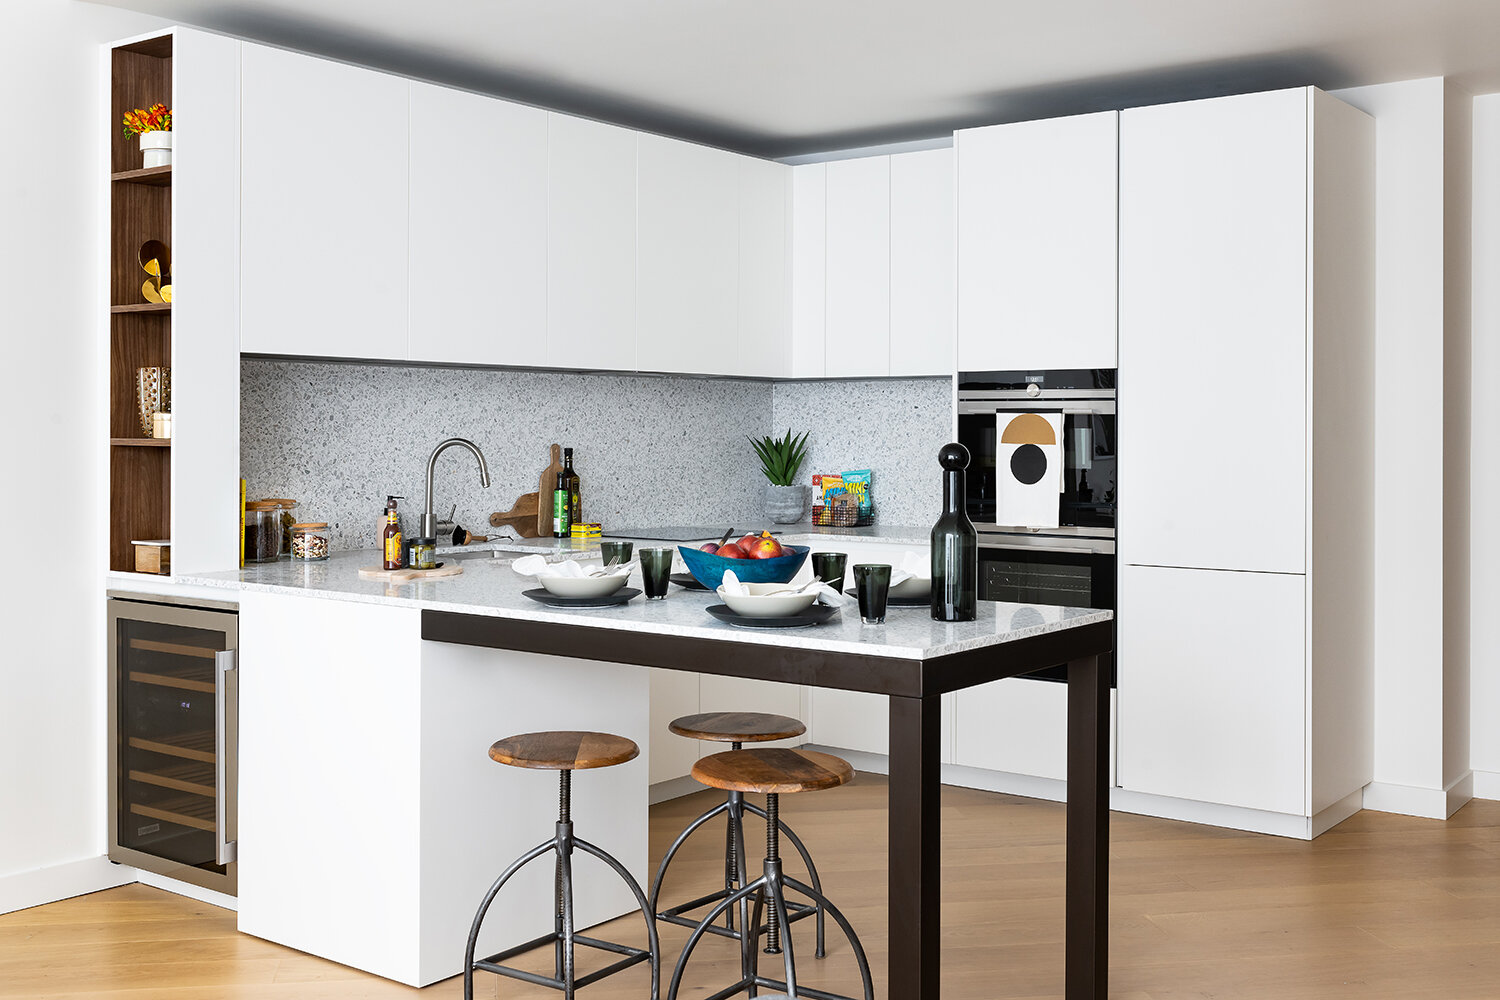 BoxNine7_Lowry_Collection_015_Kitchen.jpg